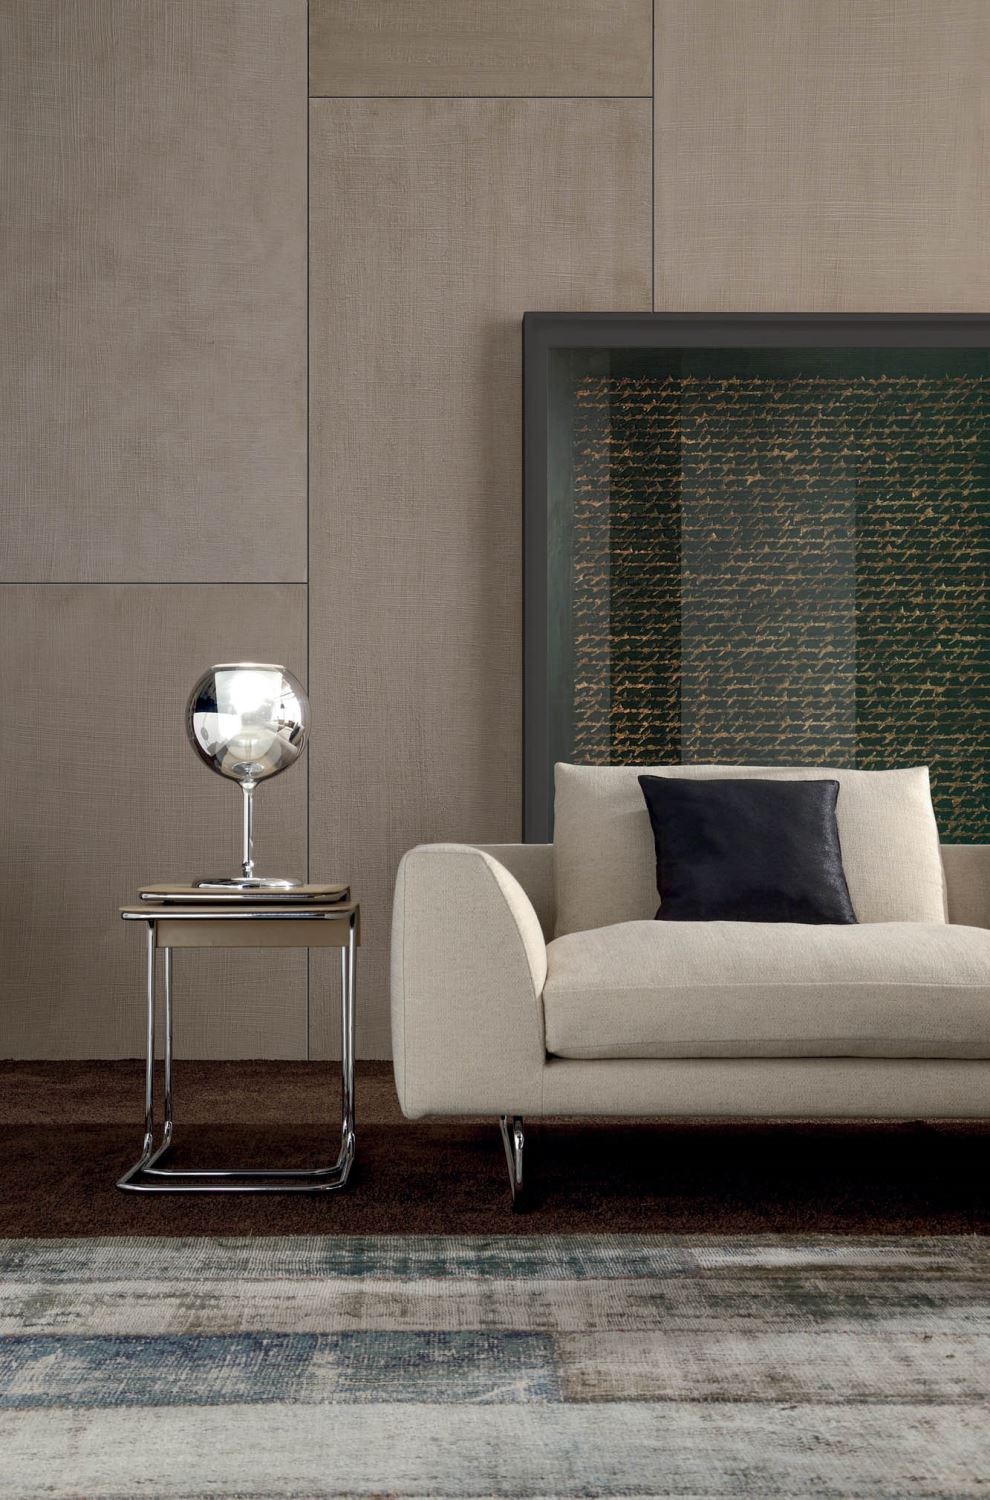 Add Look Home Collection I 4 Mariani S R L